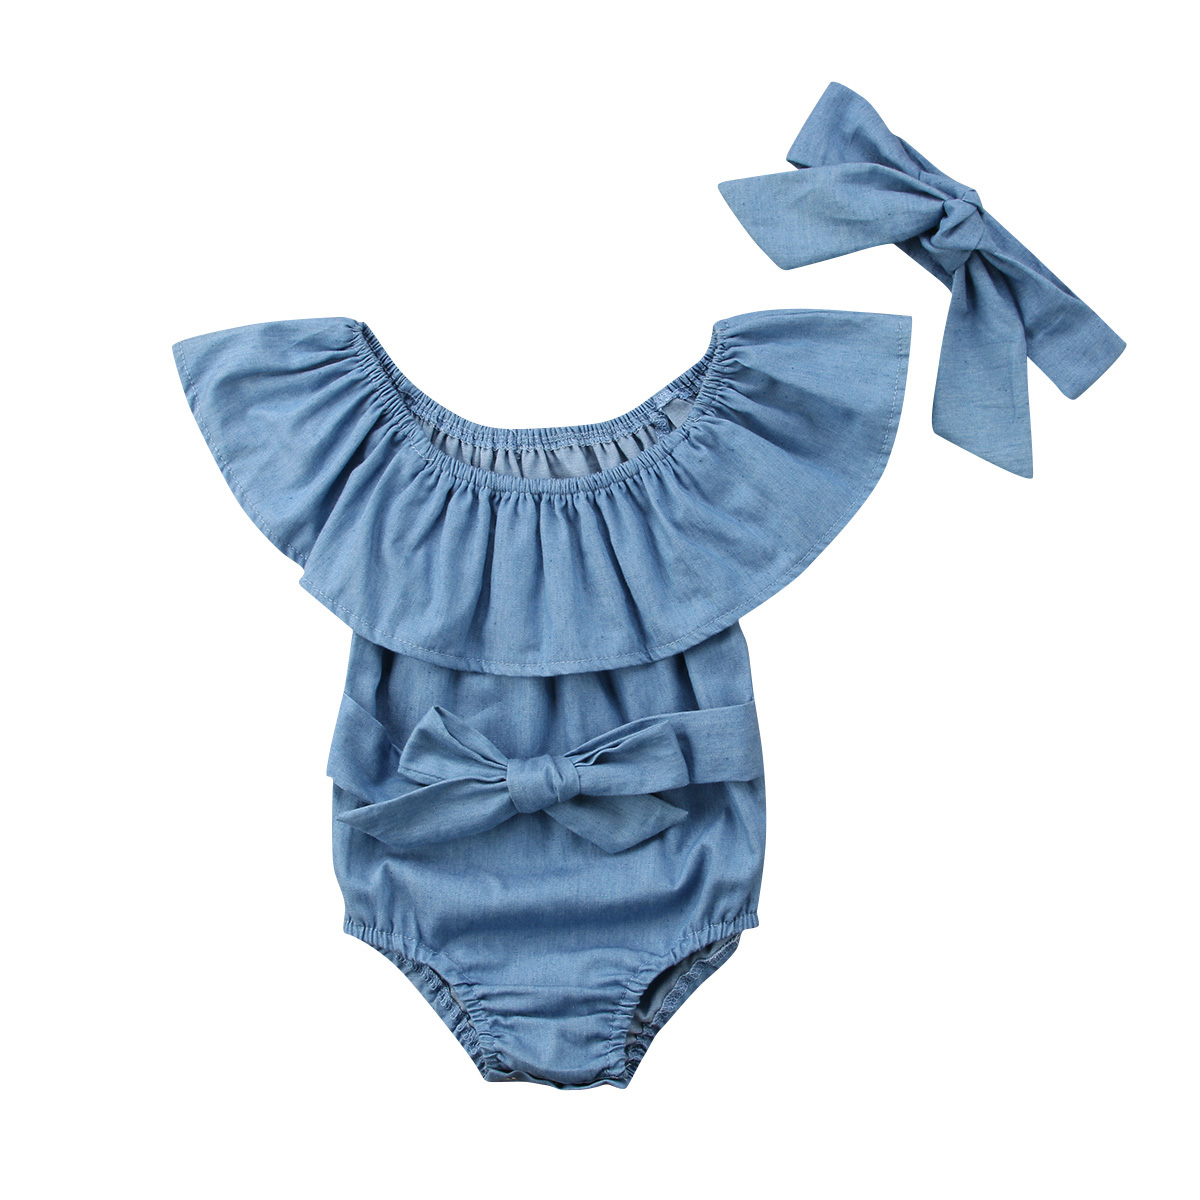 2Pcs Newborn Kids Ruffles Denim   Romper   Baby Girls Front Bowknot Jumpsuit Outfits Clothes